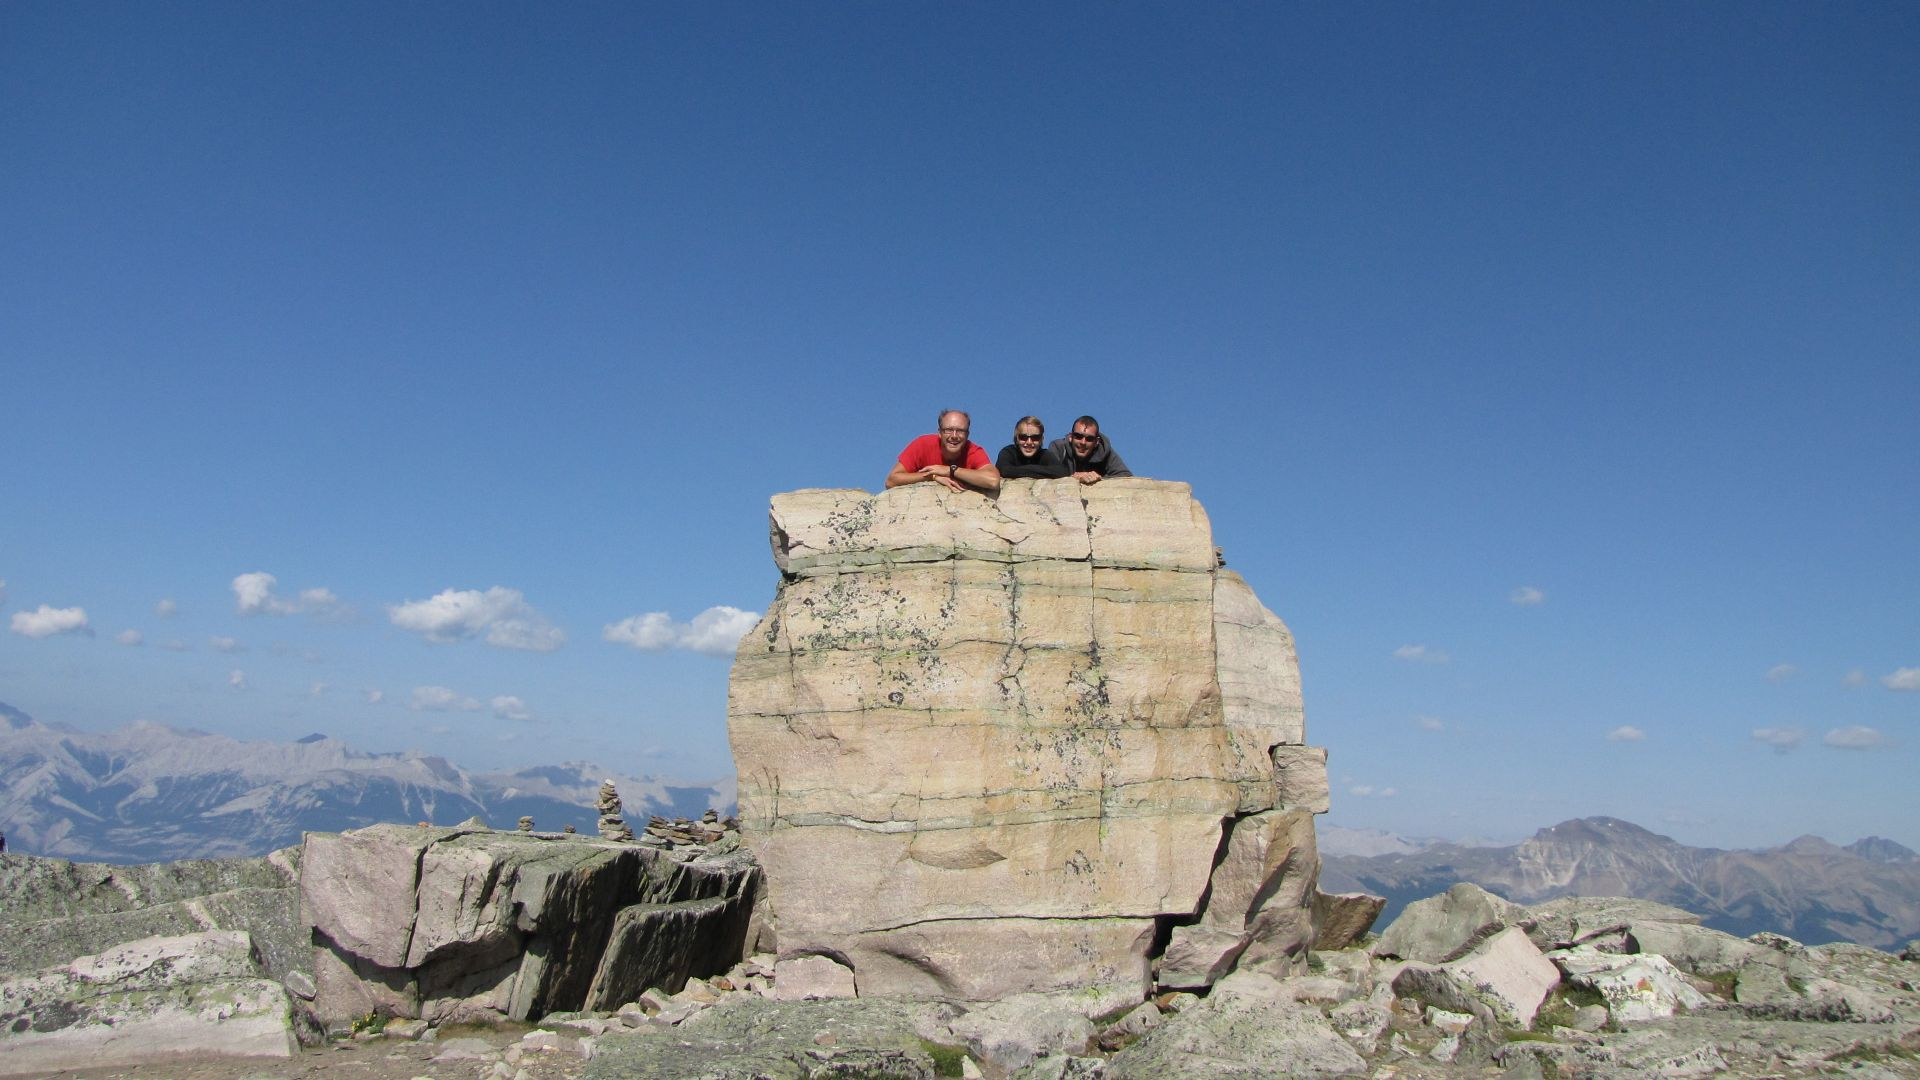 Nr Jasper, Alberta, Canada - Sabrina, Tom & I on top of the world